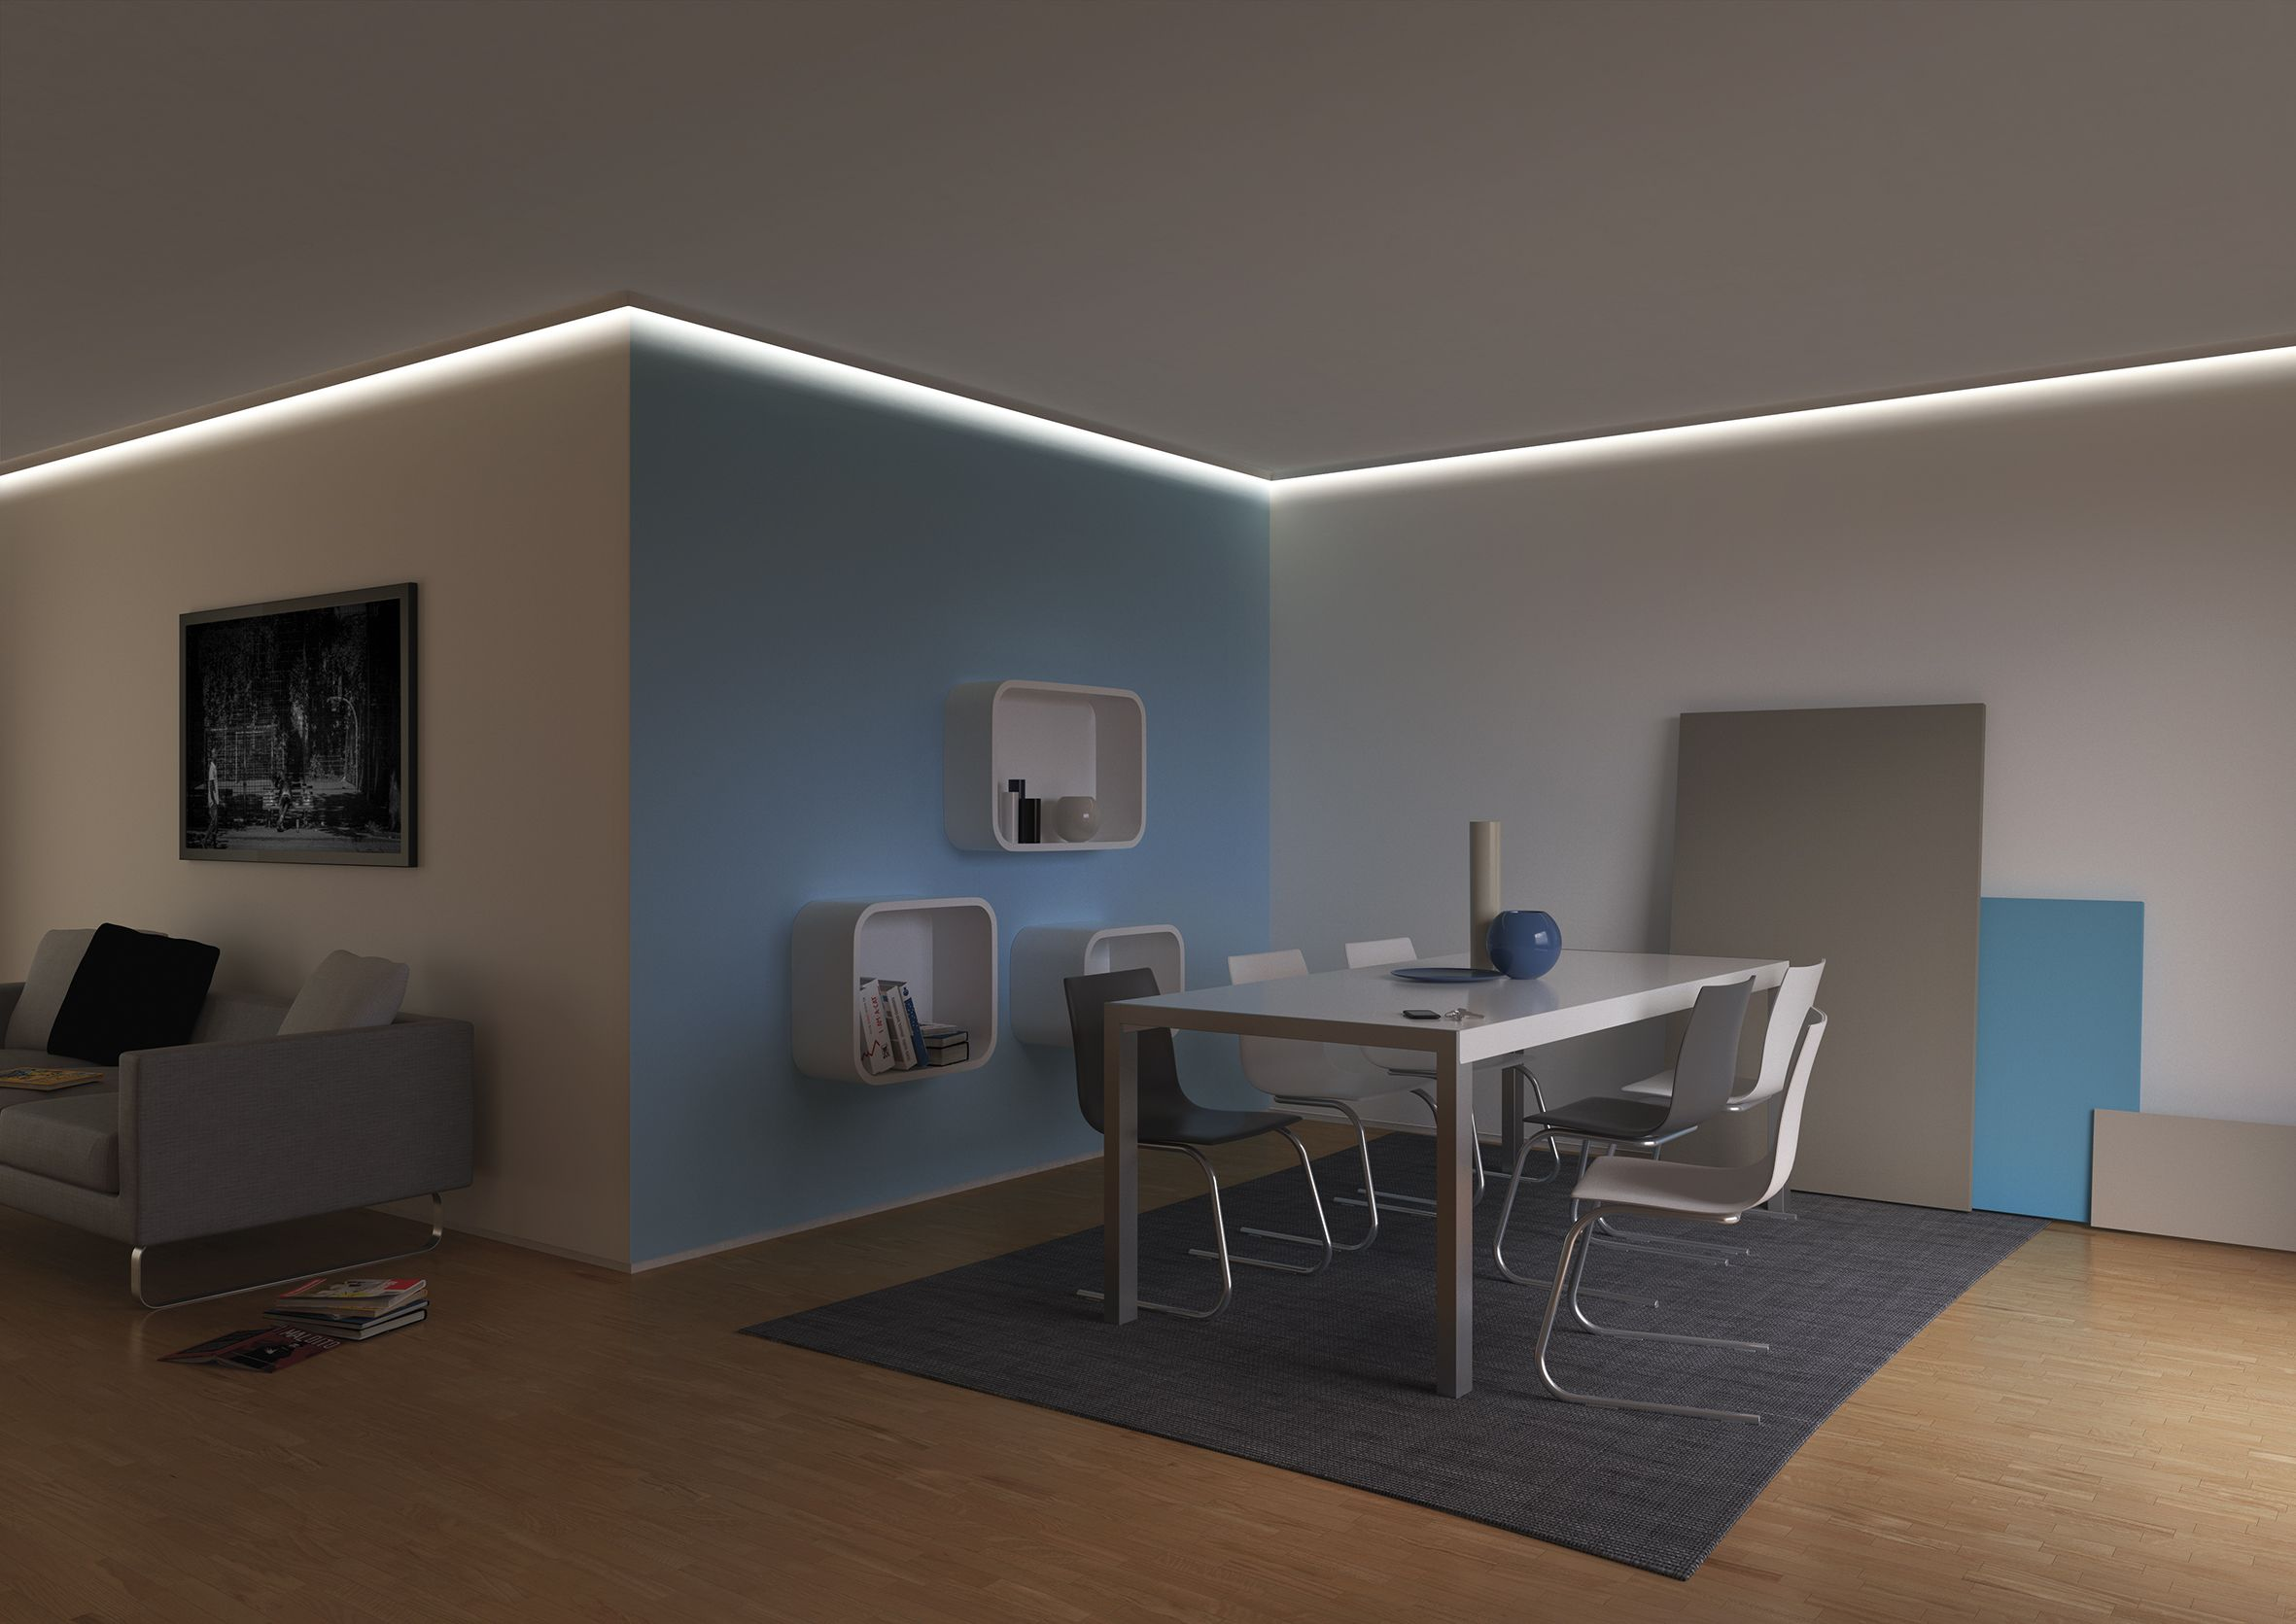 Indirect Wall Lighting lowered ceiling with indirect lighting effect - google search